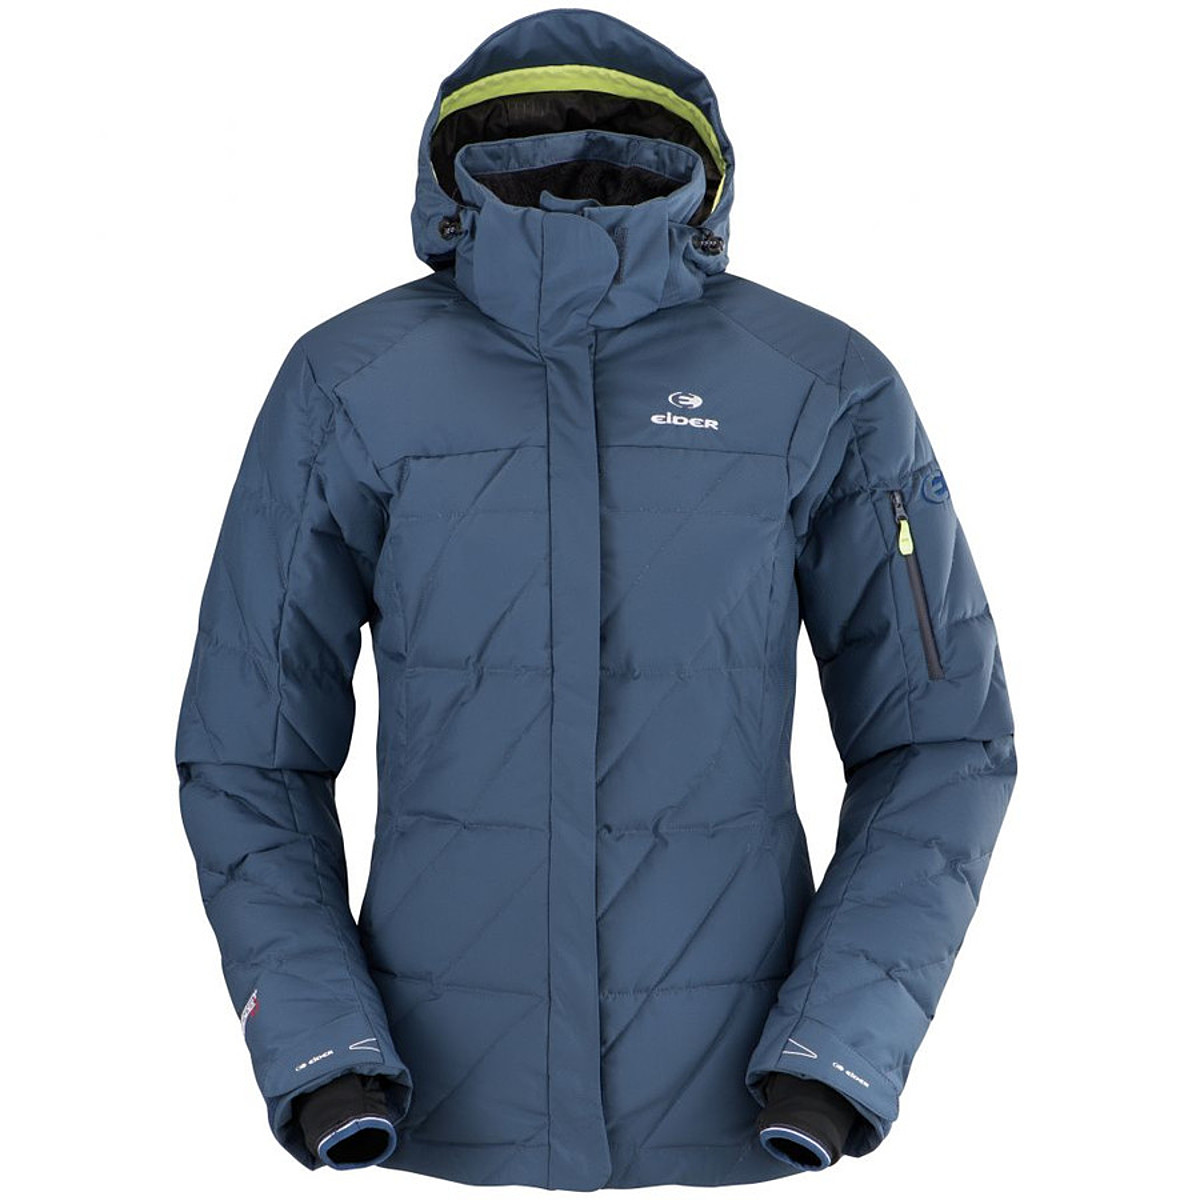 Eider Crystal Mountain Insulated Jacket